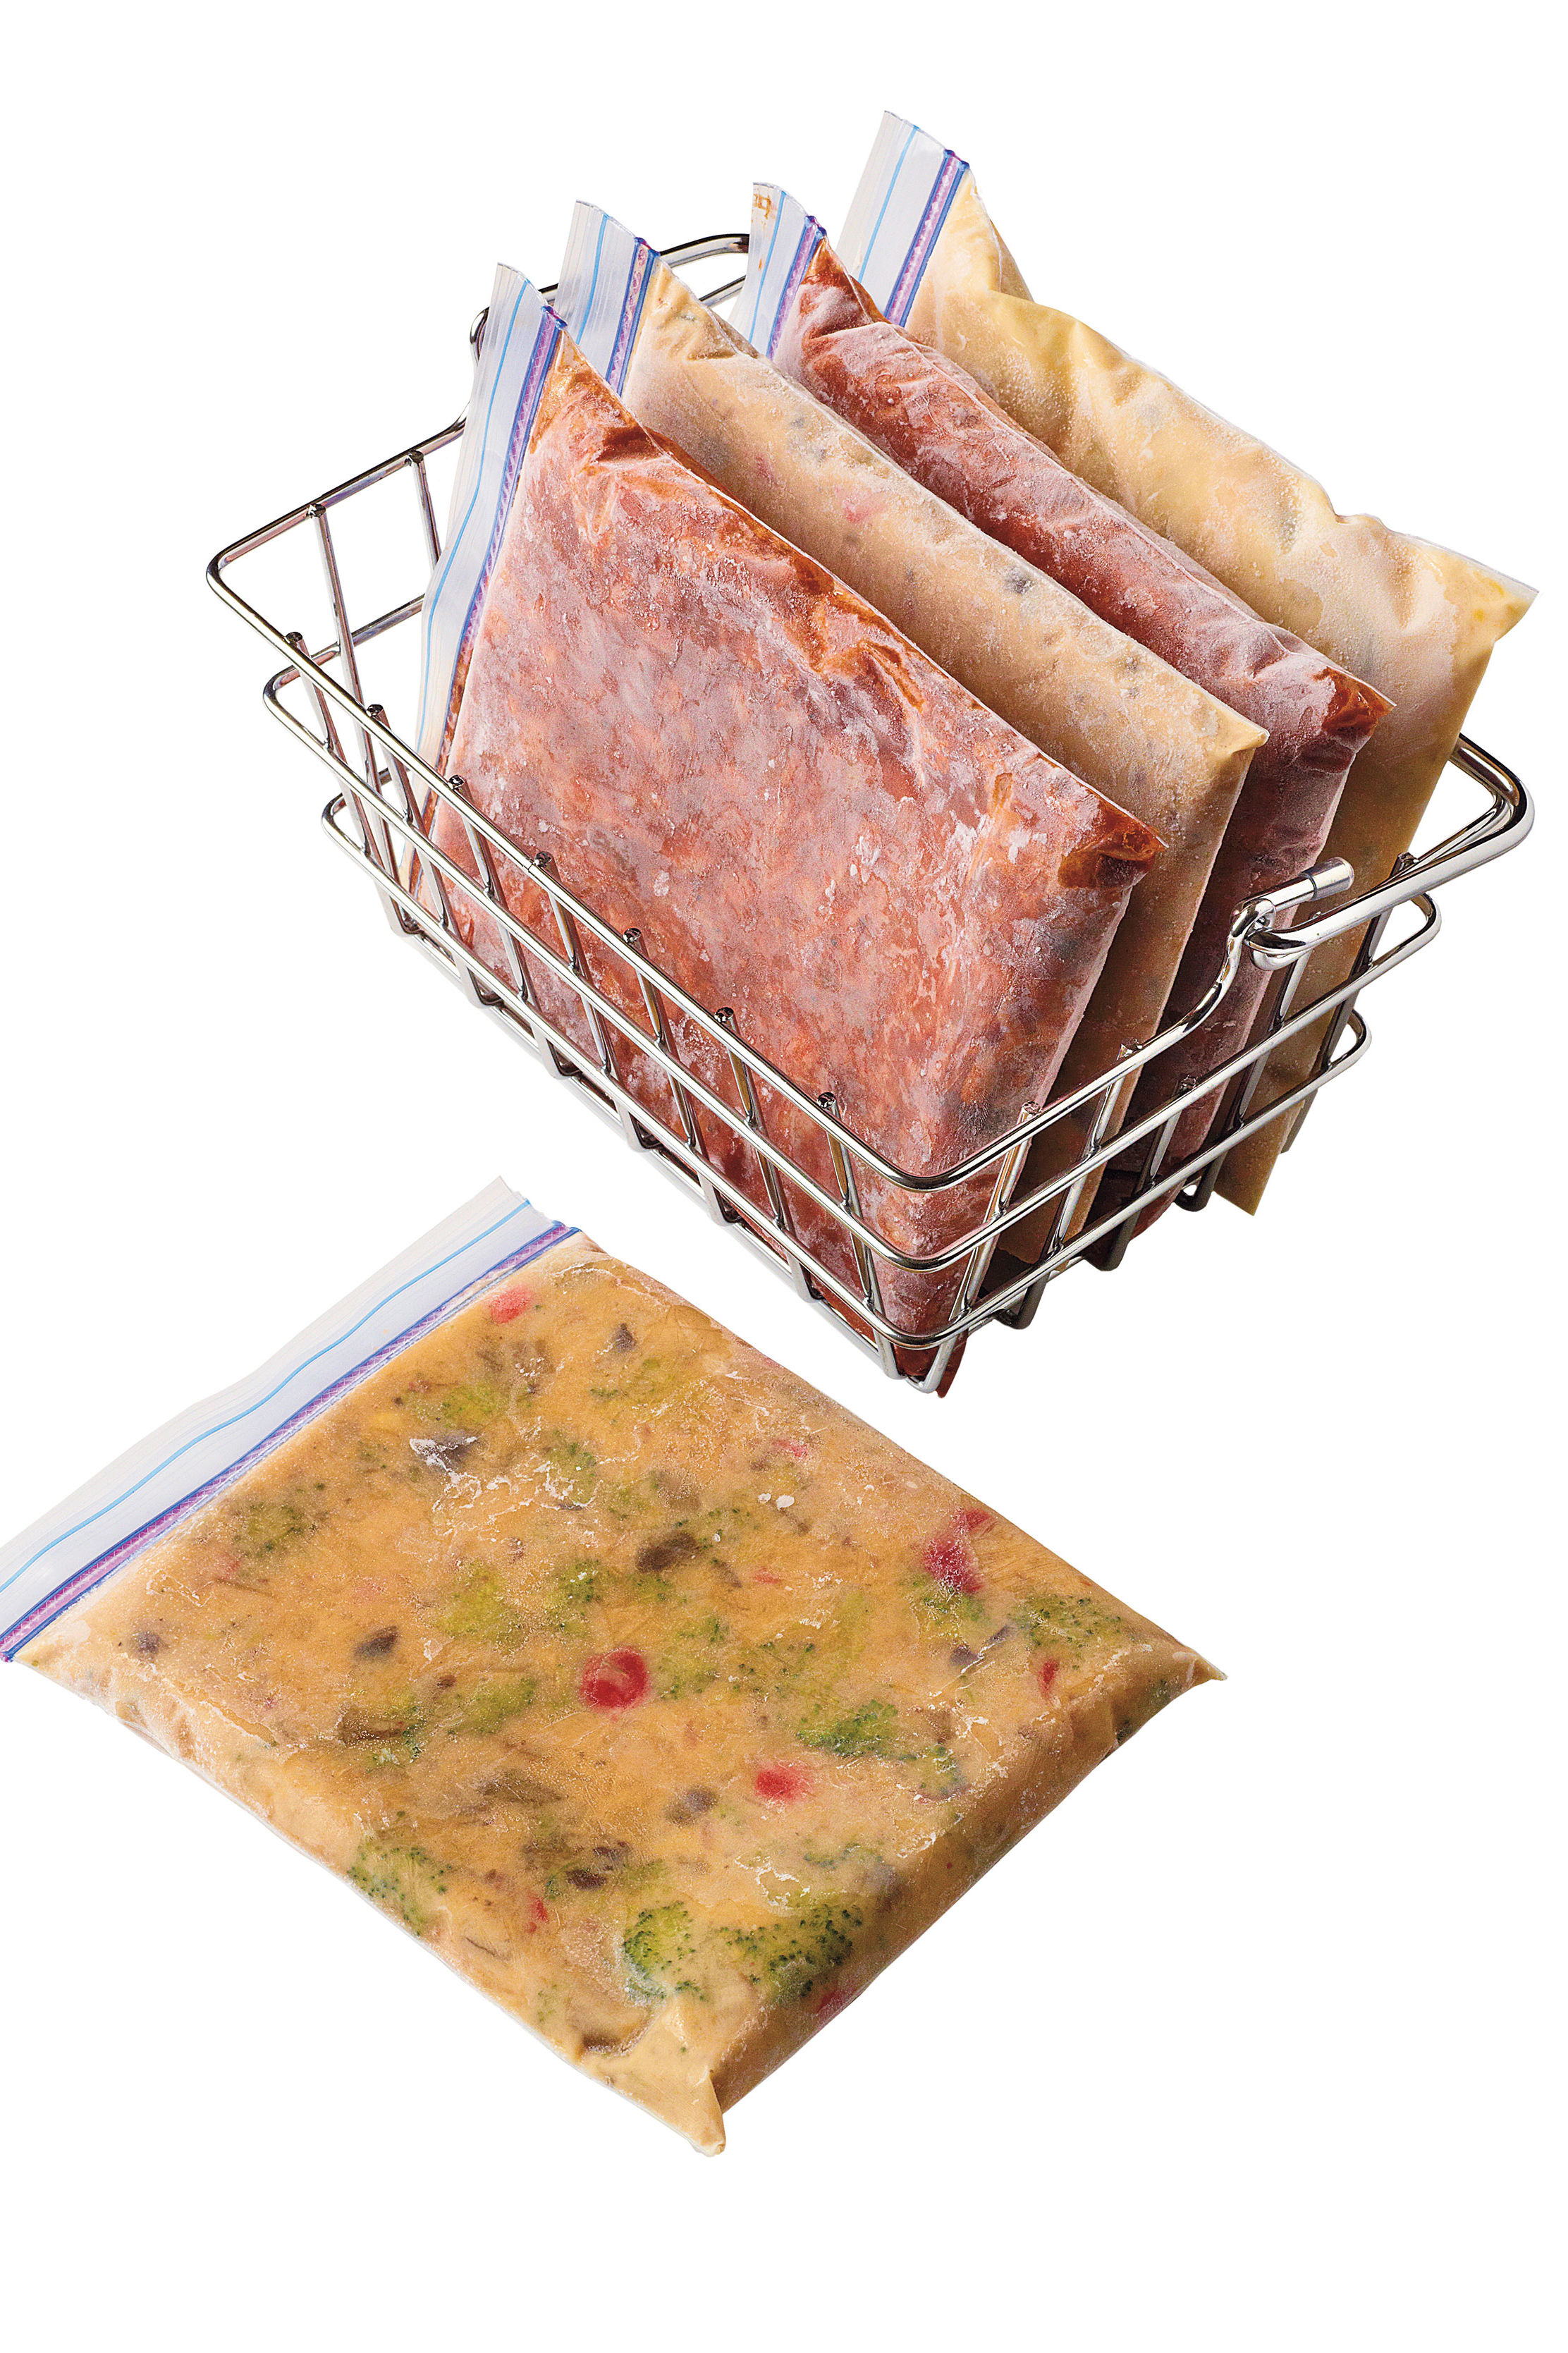 How To Freeze And Store Soup